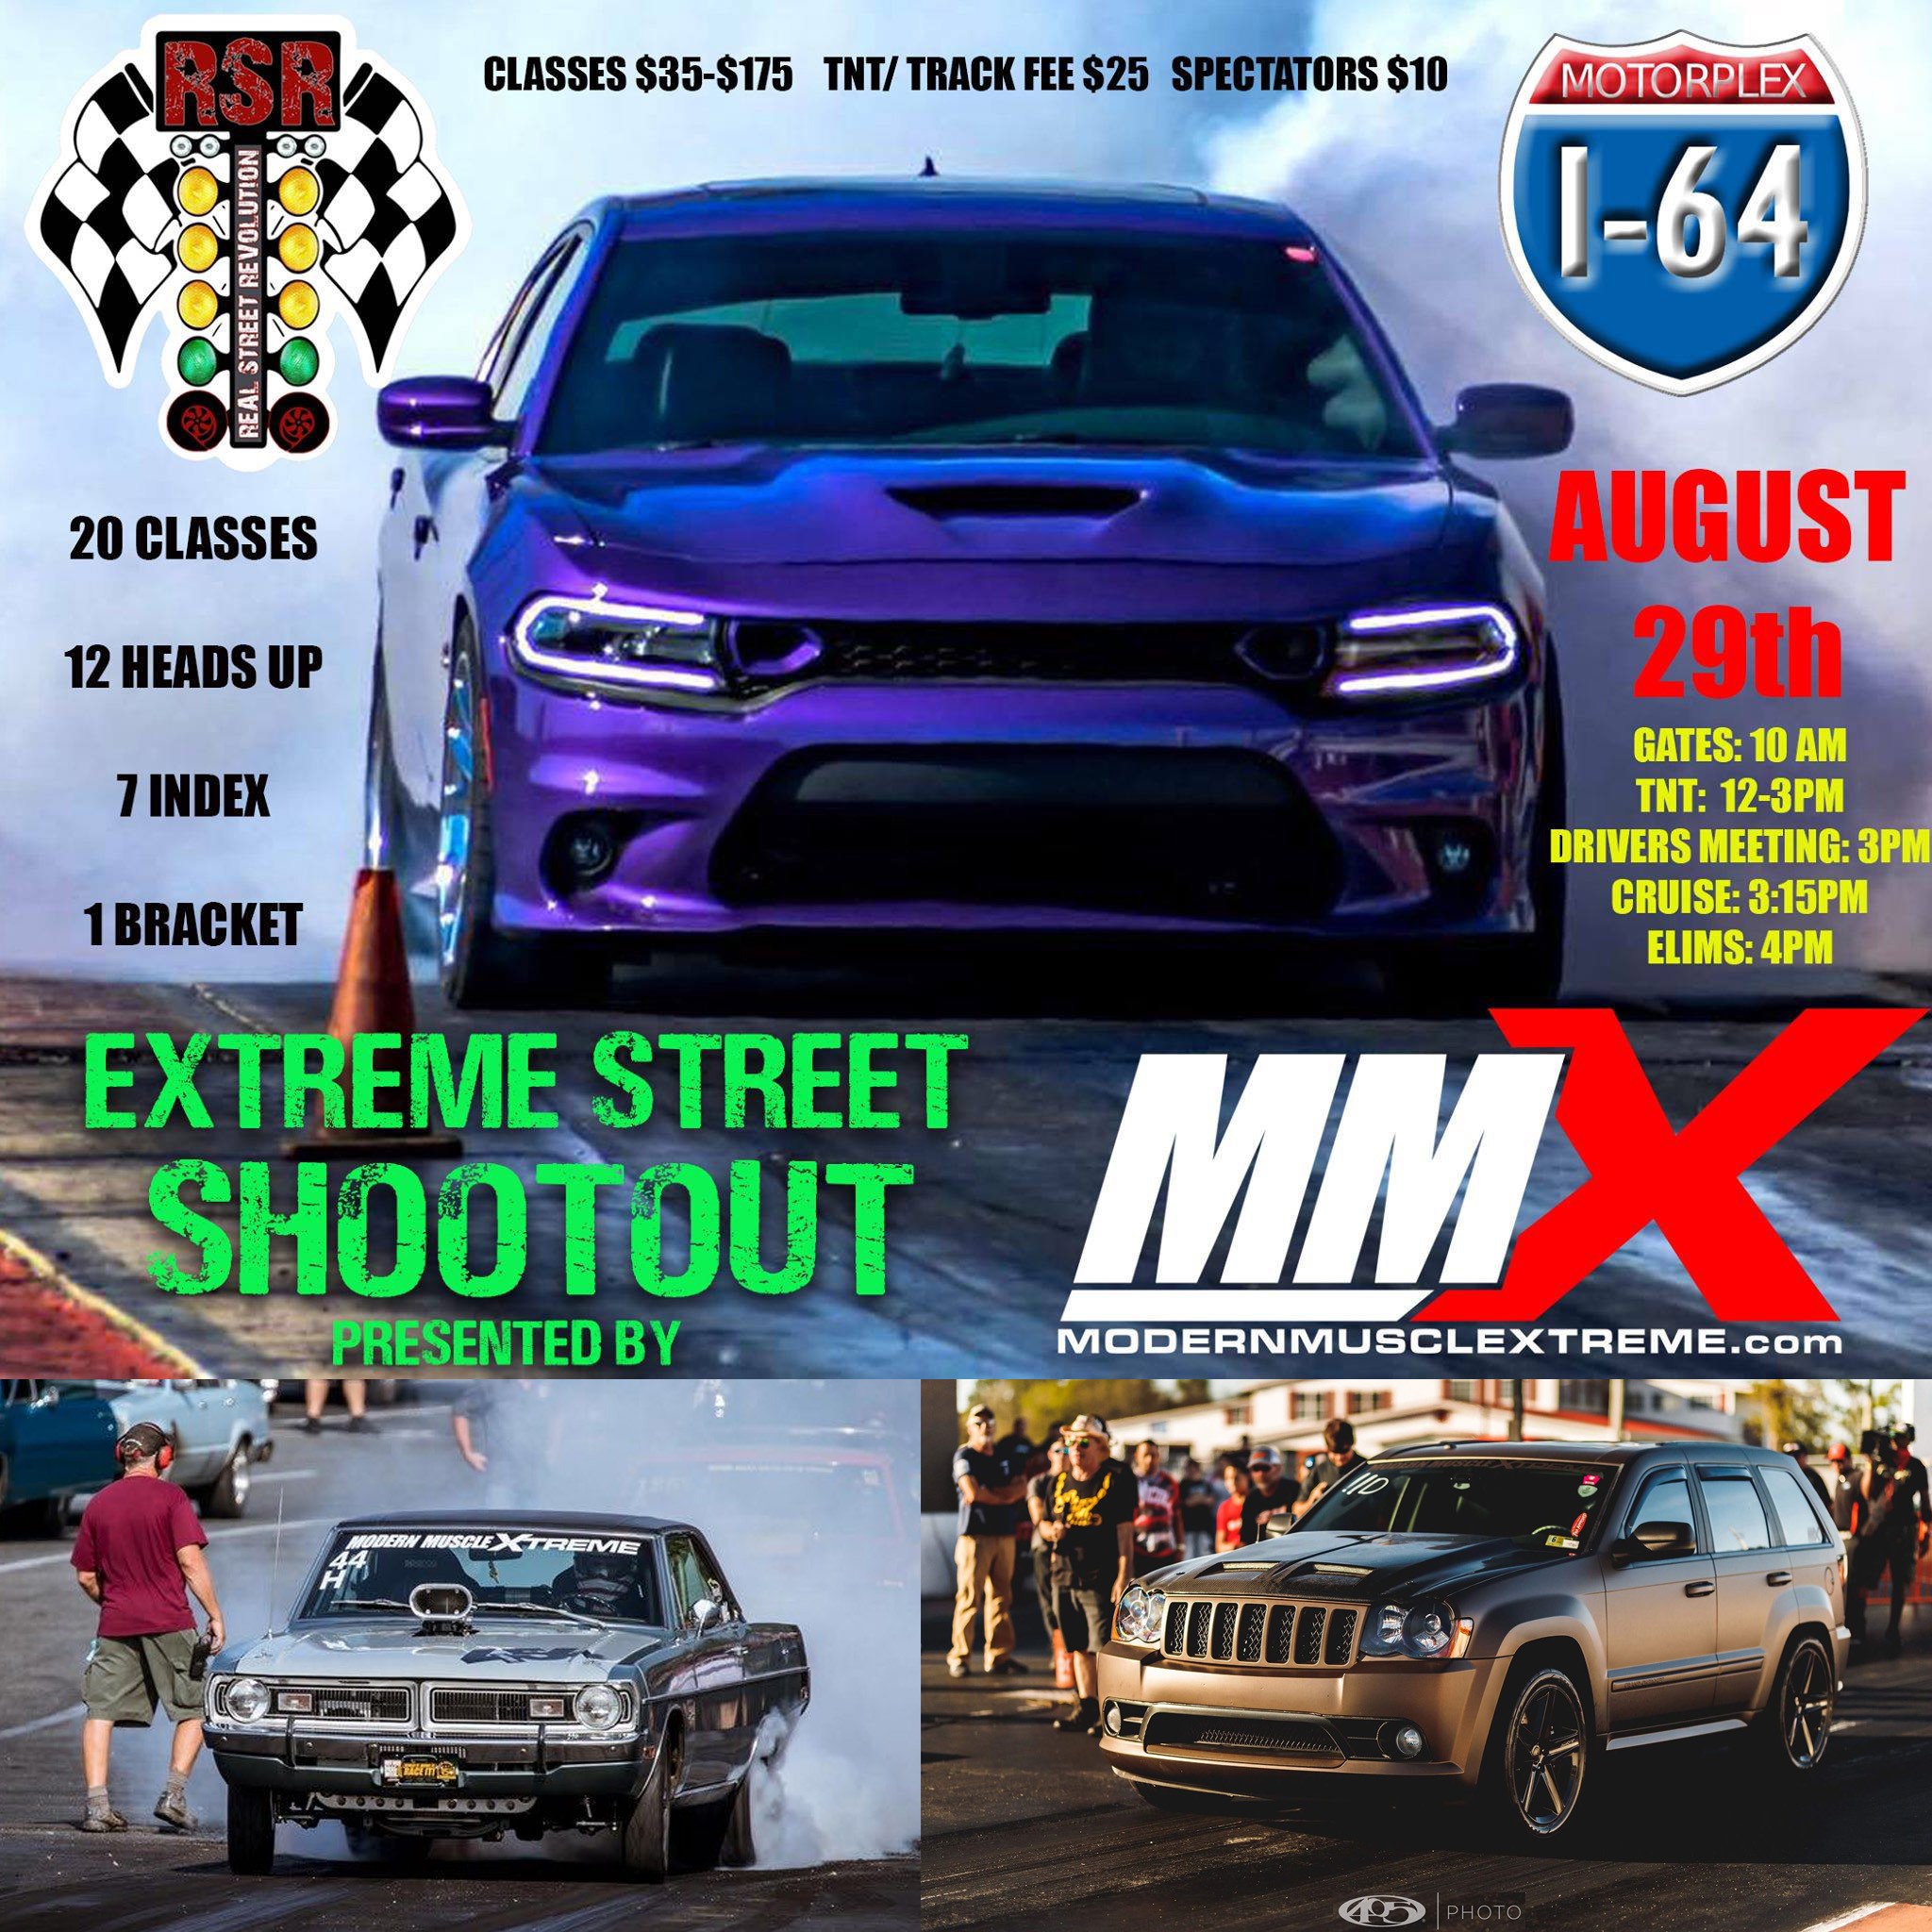 Real Street Revolution Extreme Street Shootout 2020 - I64 Motorplex, Owingsville, KY on August 29, 2020